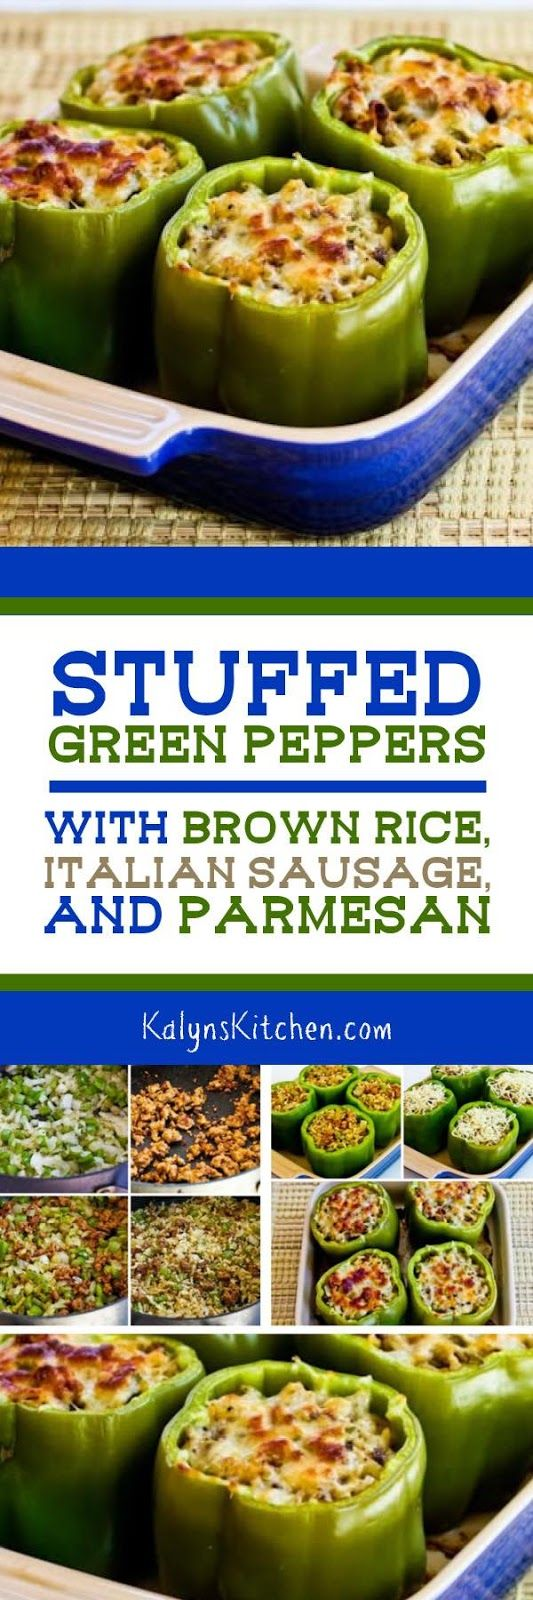 These Stuffed Green Peppers with Brown Rice, Italian Sausage, and Parmesan have been HUGELY POPULAR on the blog. If you prefer lower-carbs, the recipe has a link to a similar recipe without the rice, but if you're a stuffed peppers fan, this is a MUST-MAKE recipe! [found on KalynsKitchen.com]